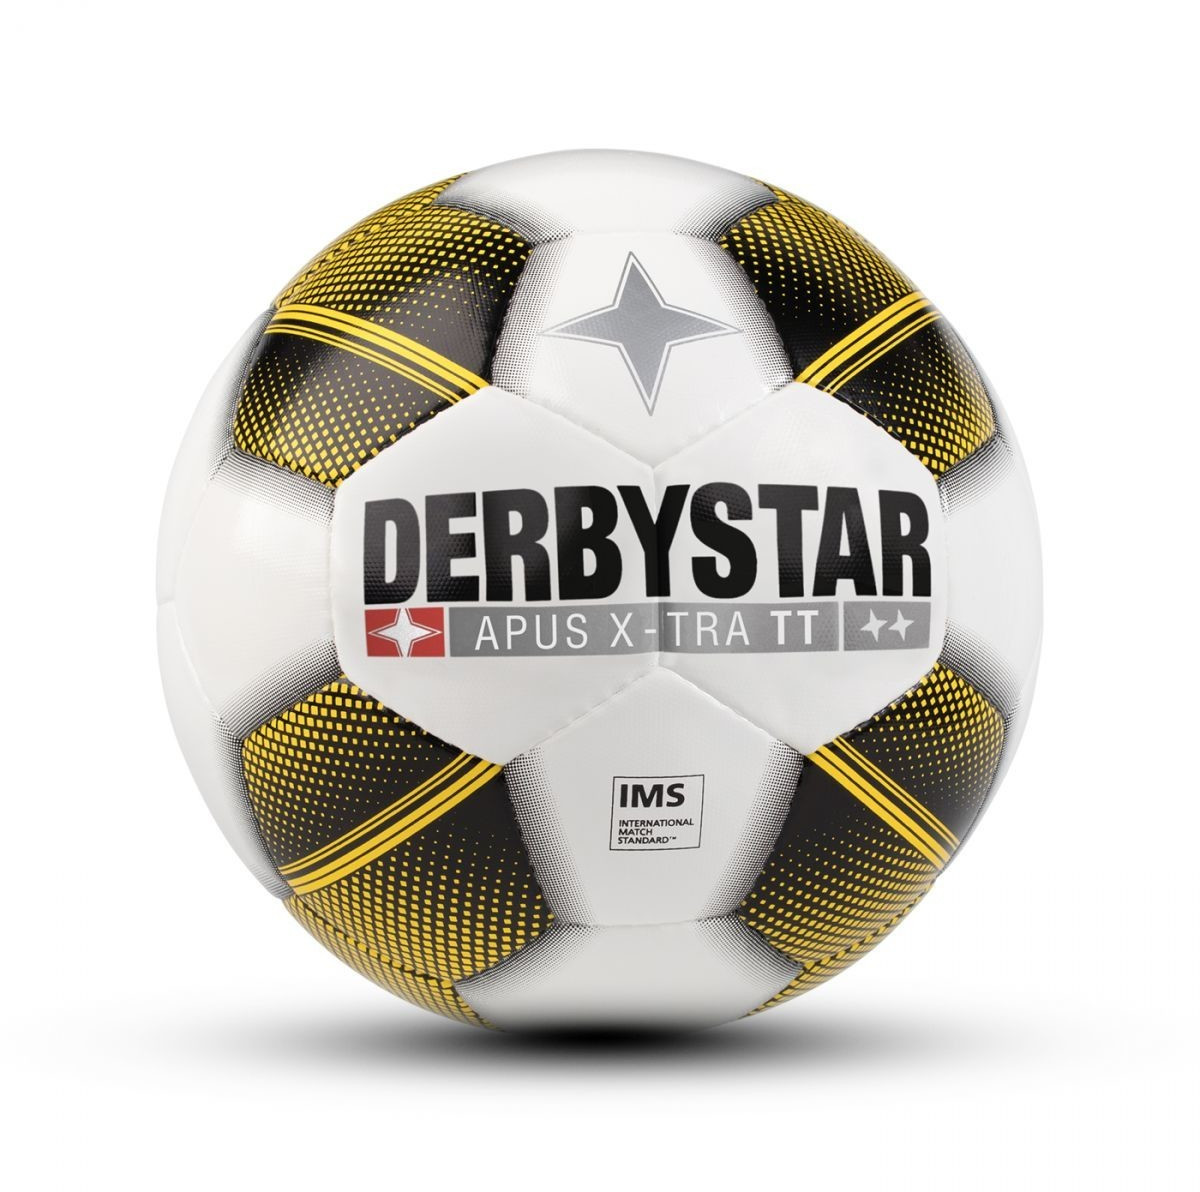 Derbystar Apus Xtra TT white black yellow (1143500152)